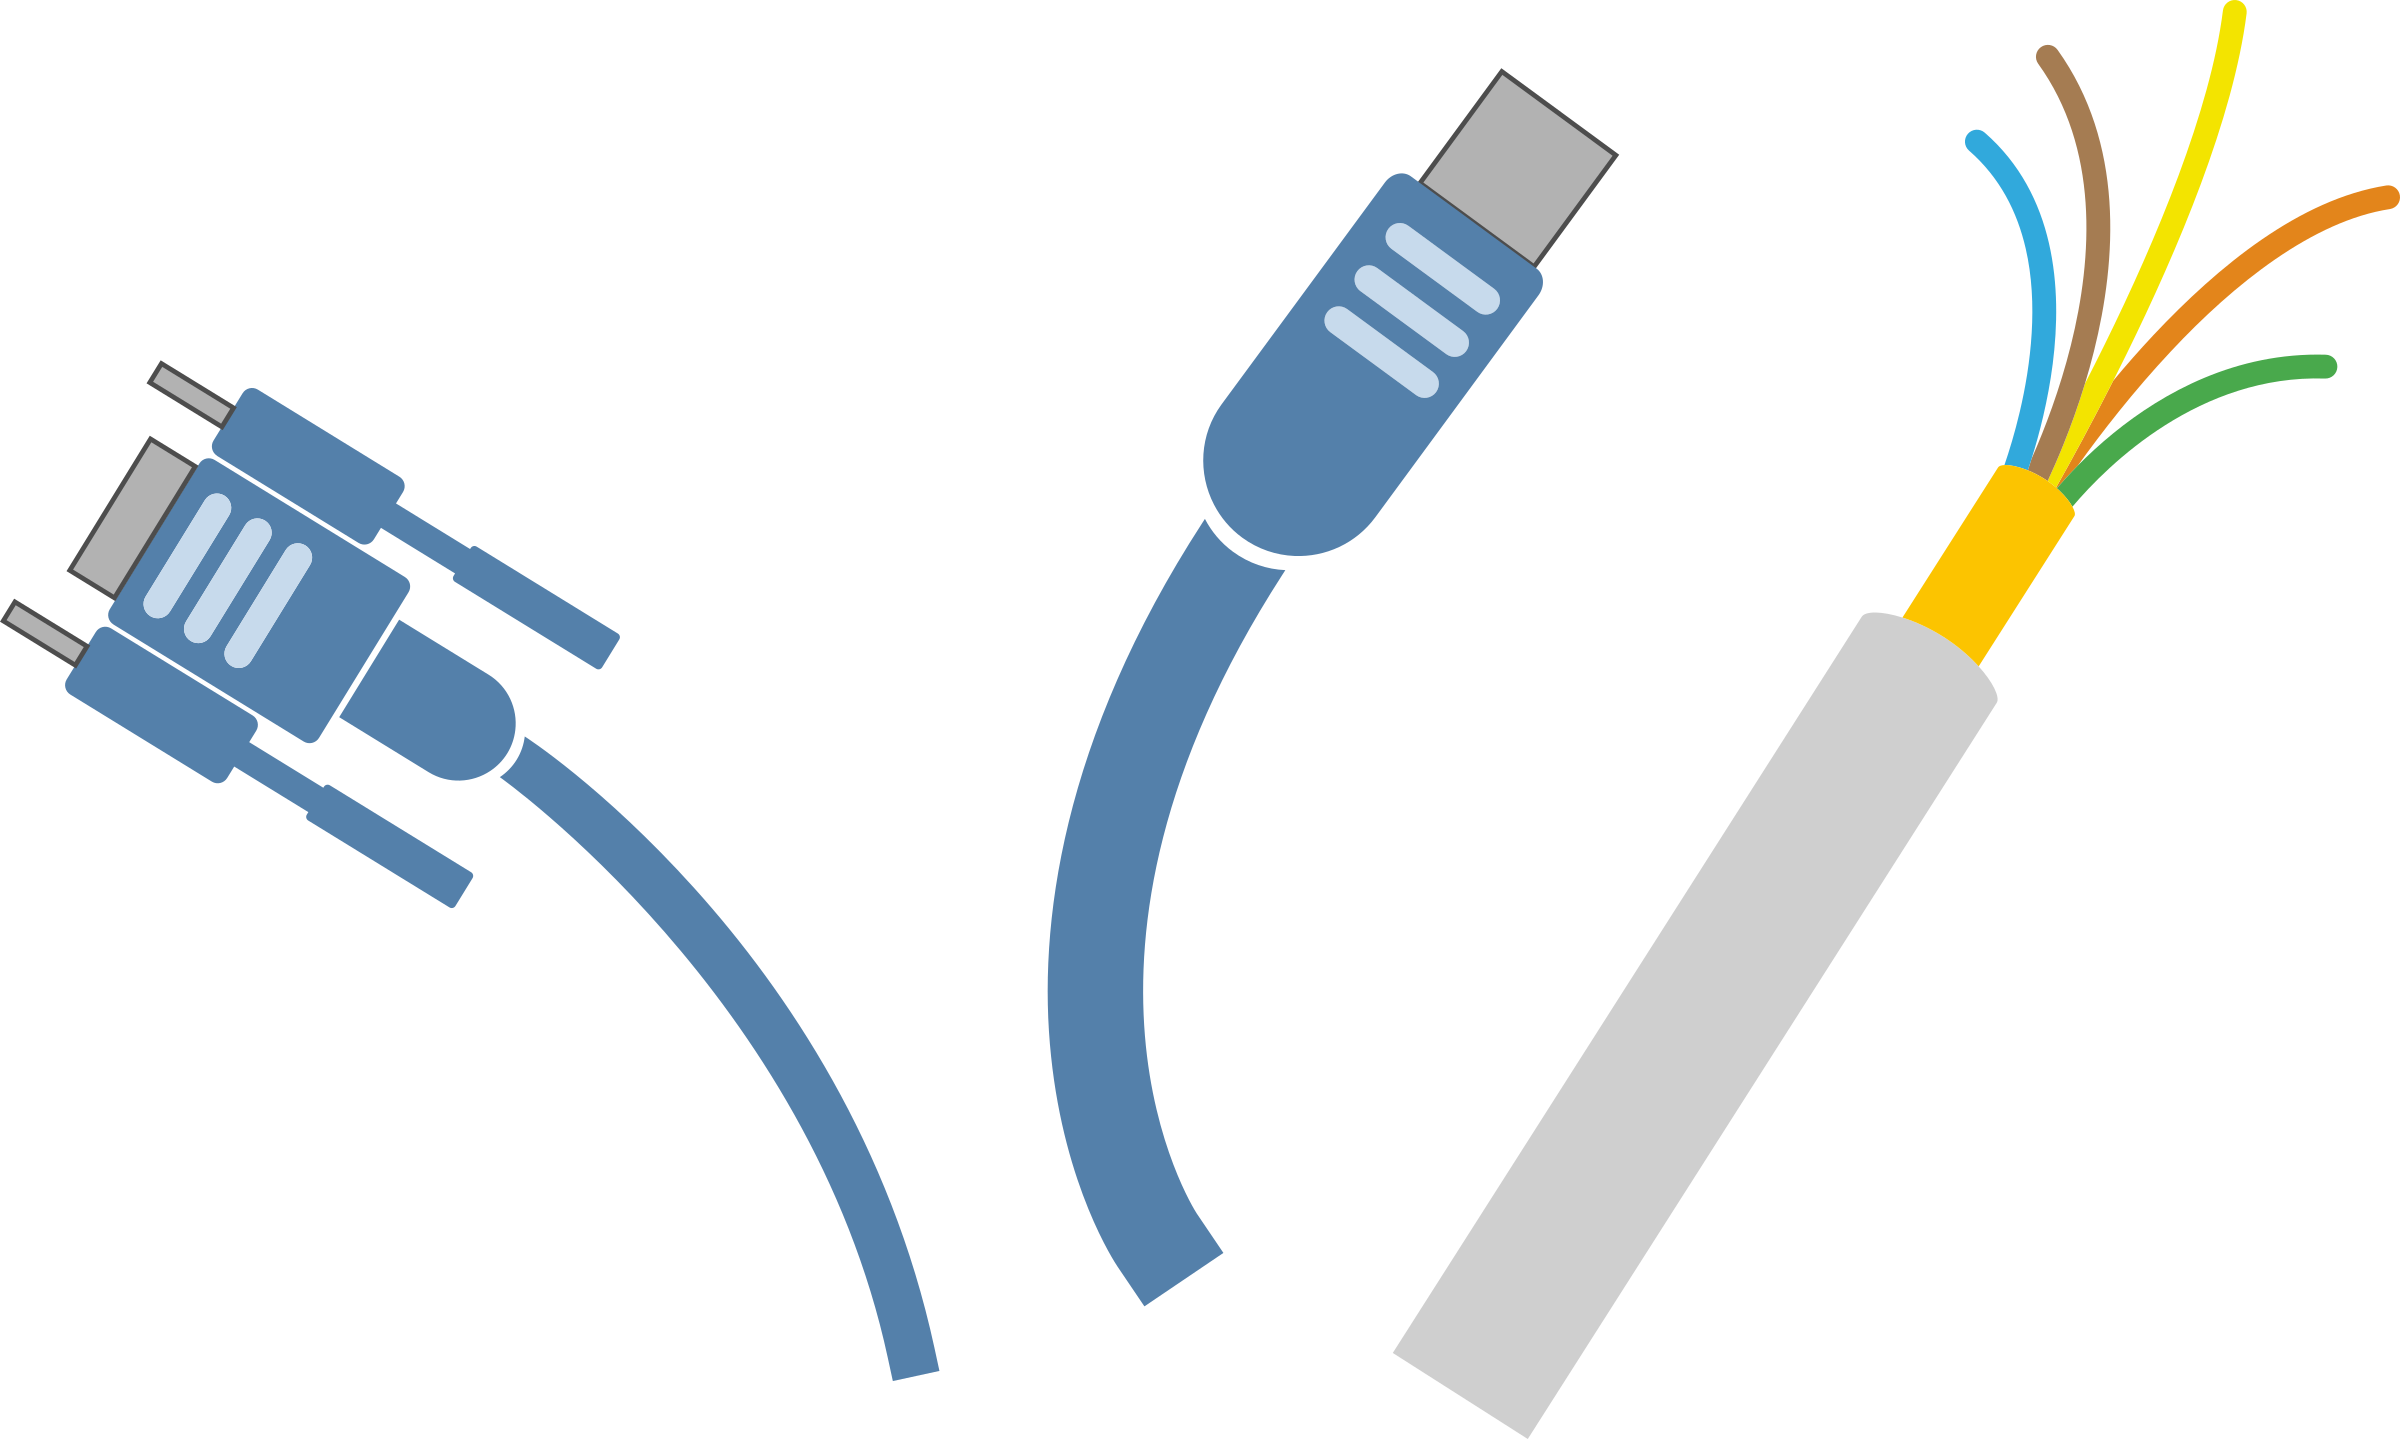 Cable Vector